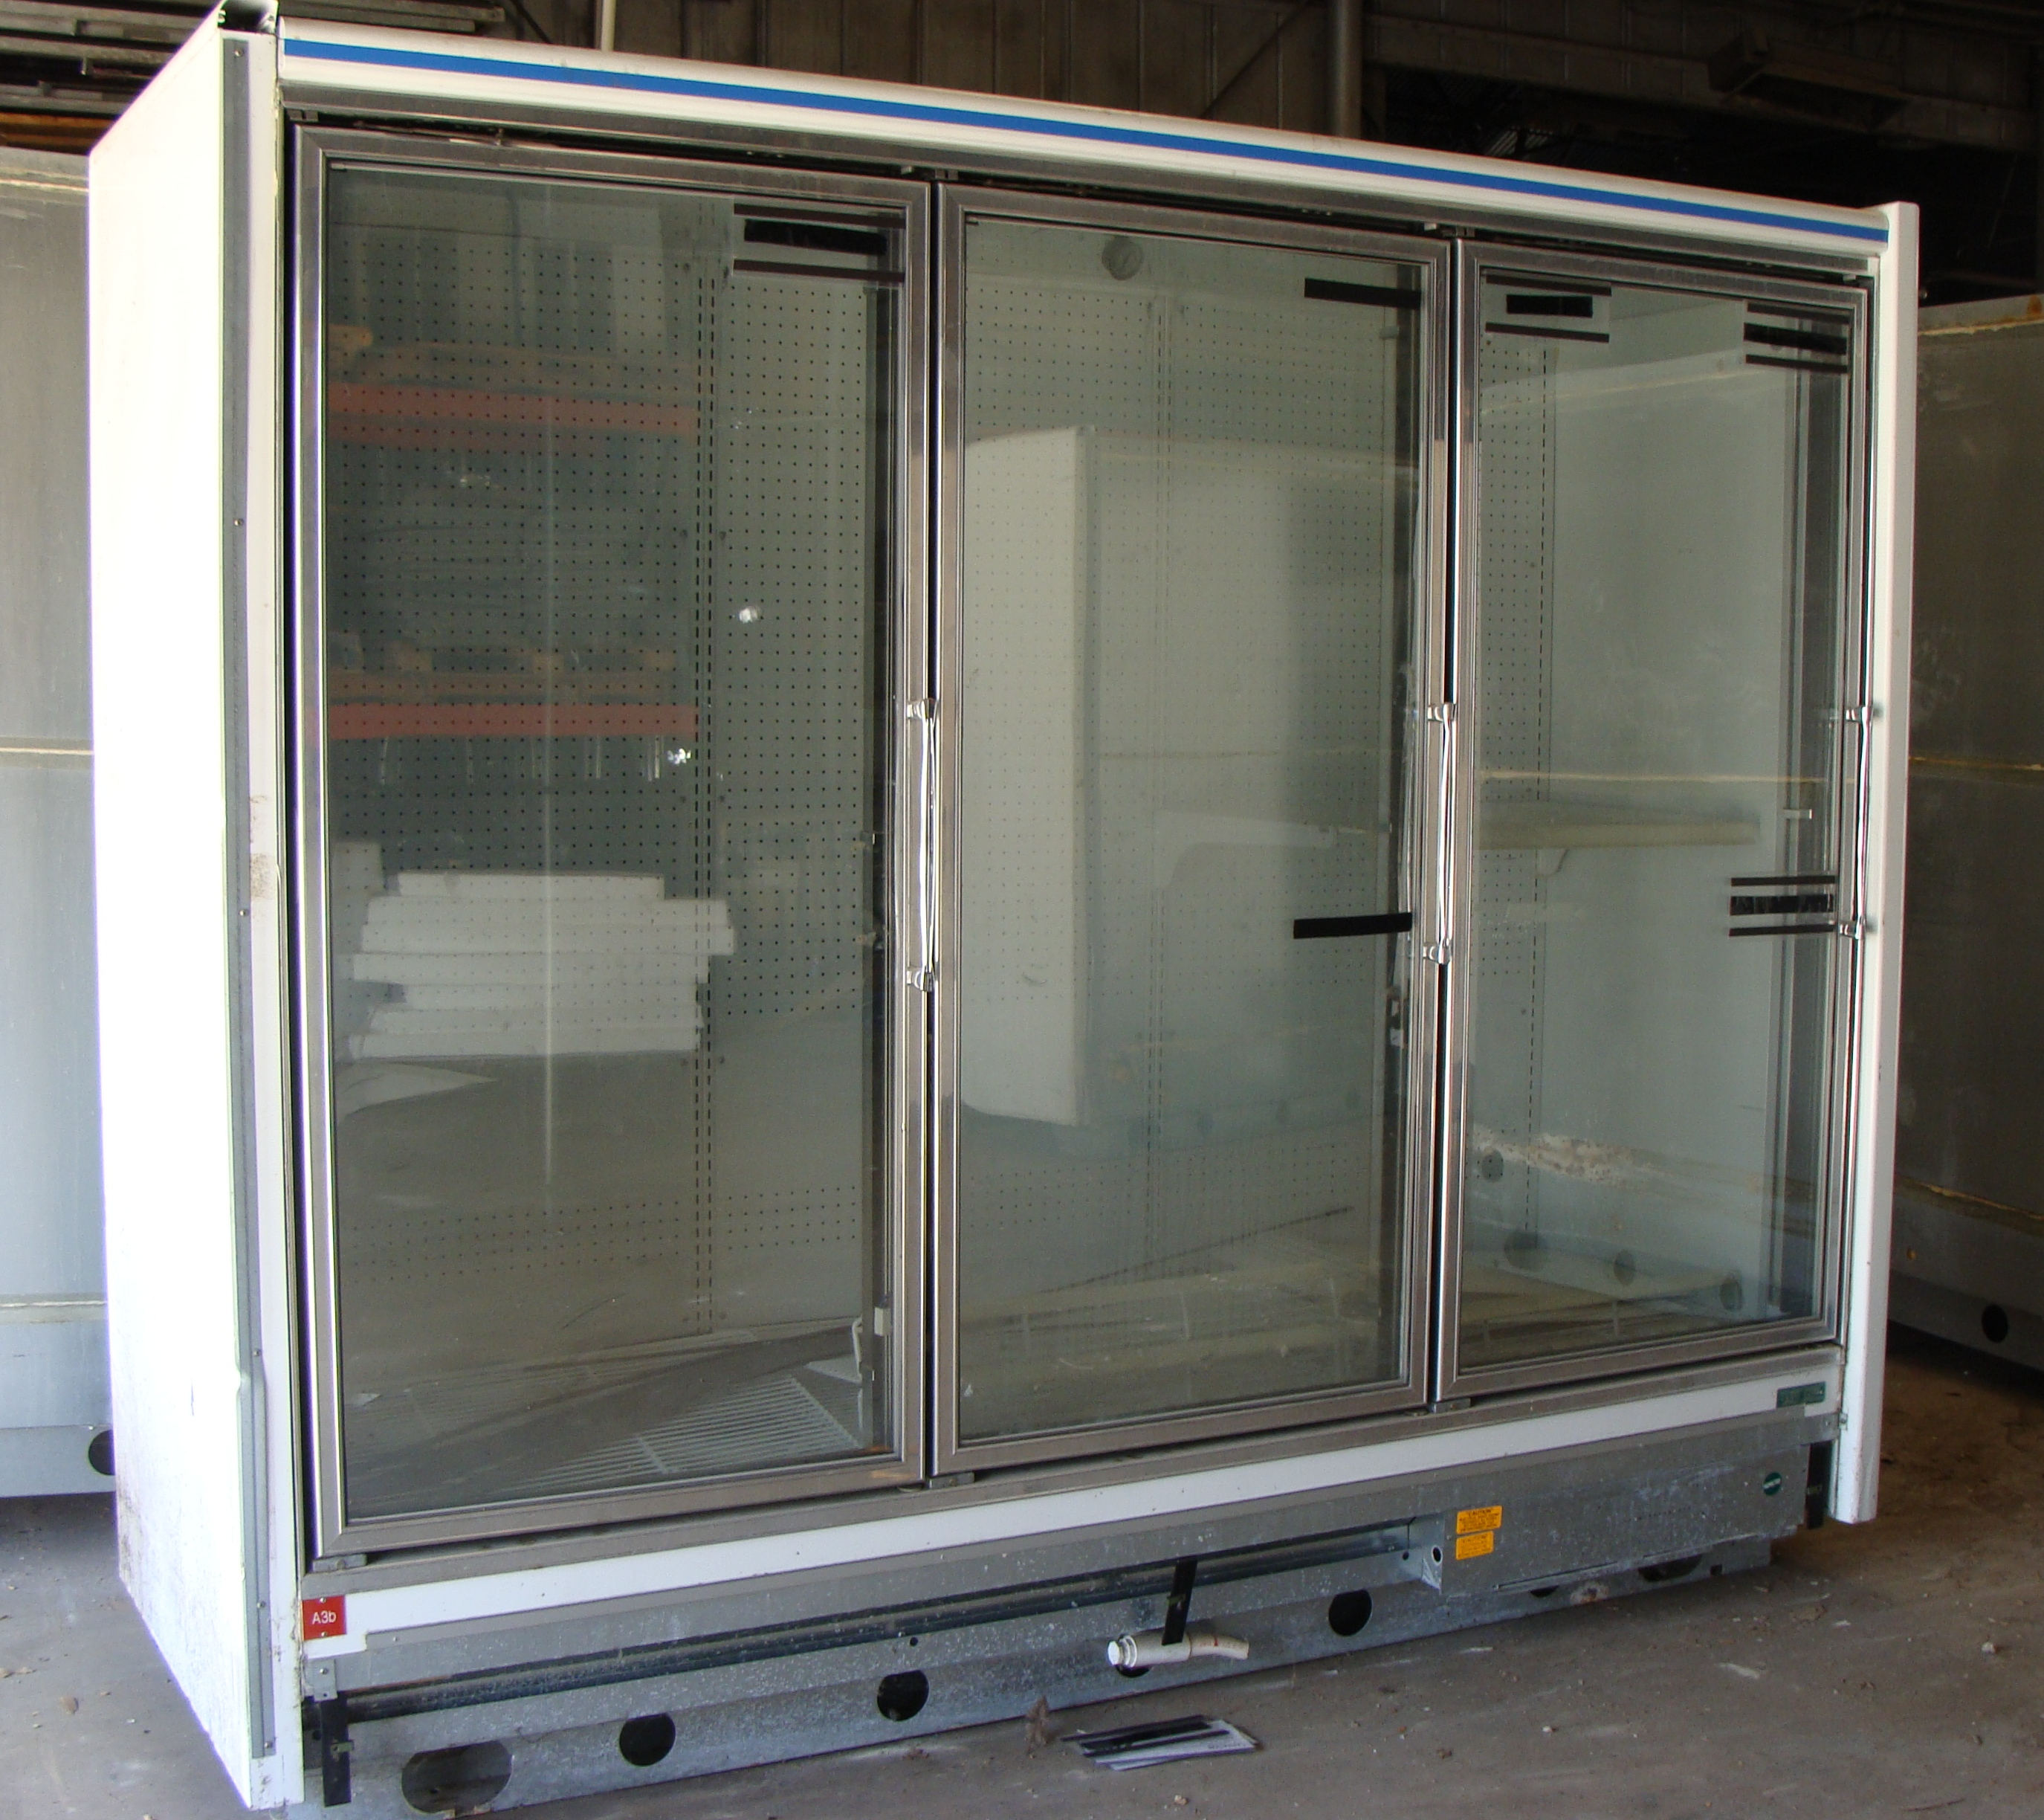 Commercial Refrigeration Service Sales Construction Sales #404D63